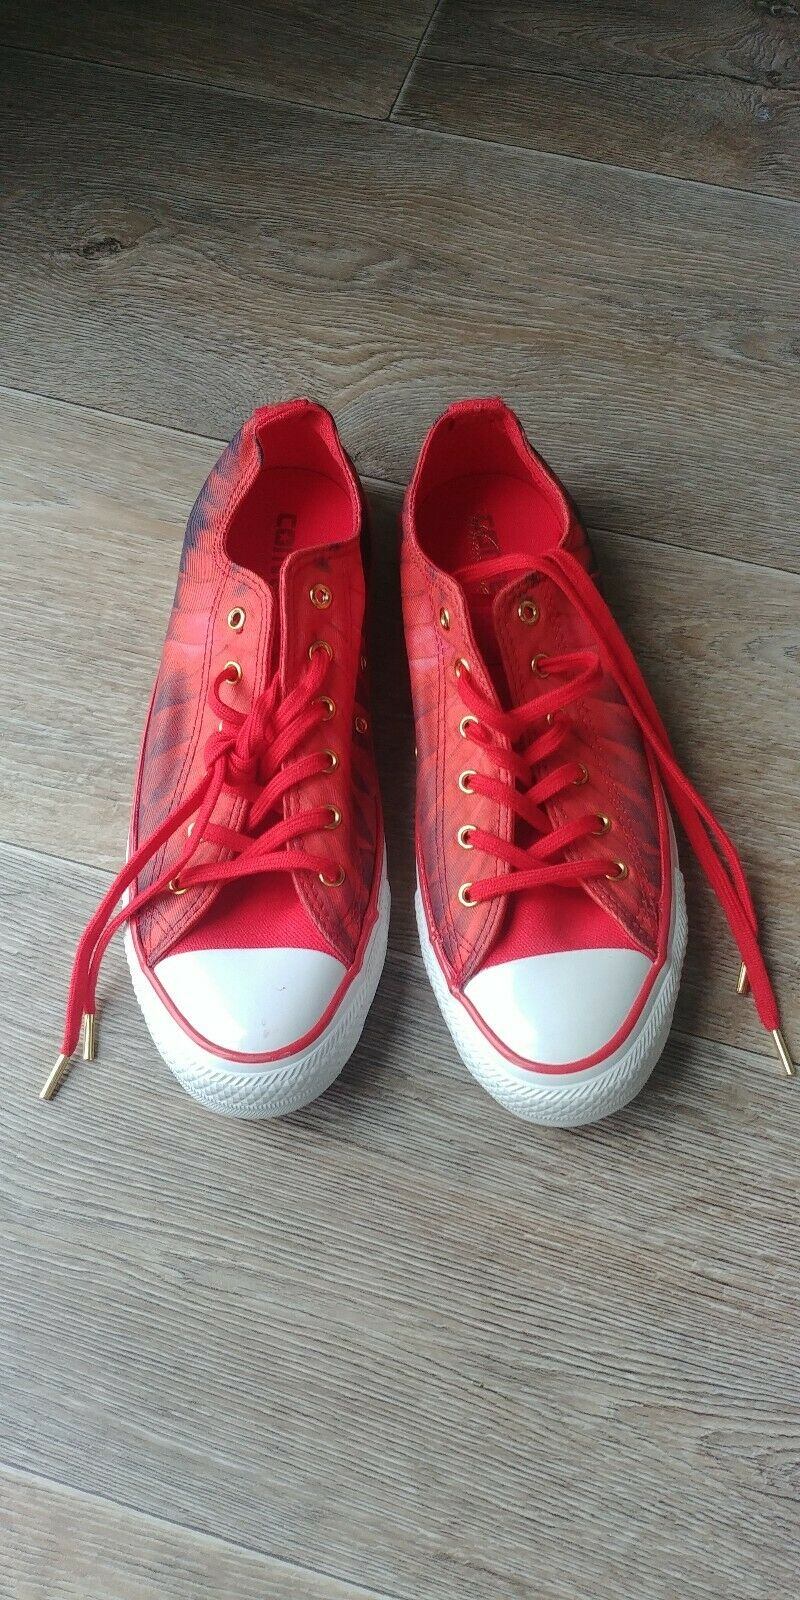 Stunning Converse Red Feather Cupid Size UK6 EU39